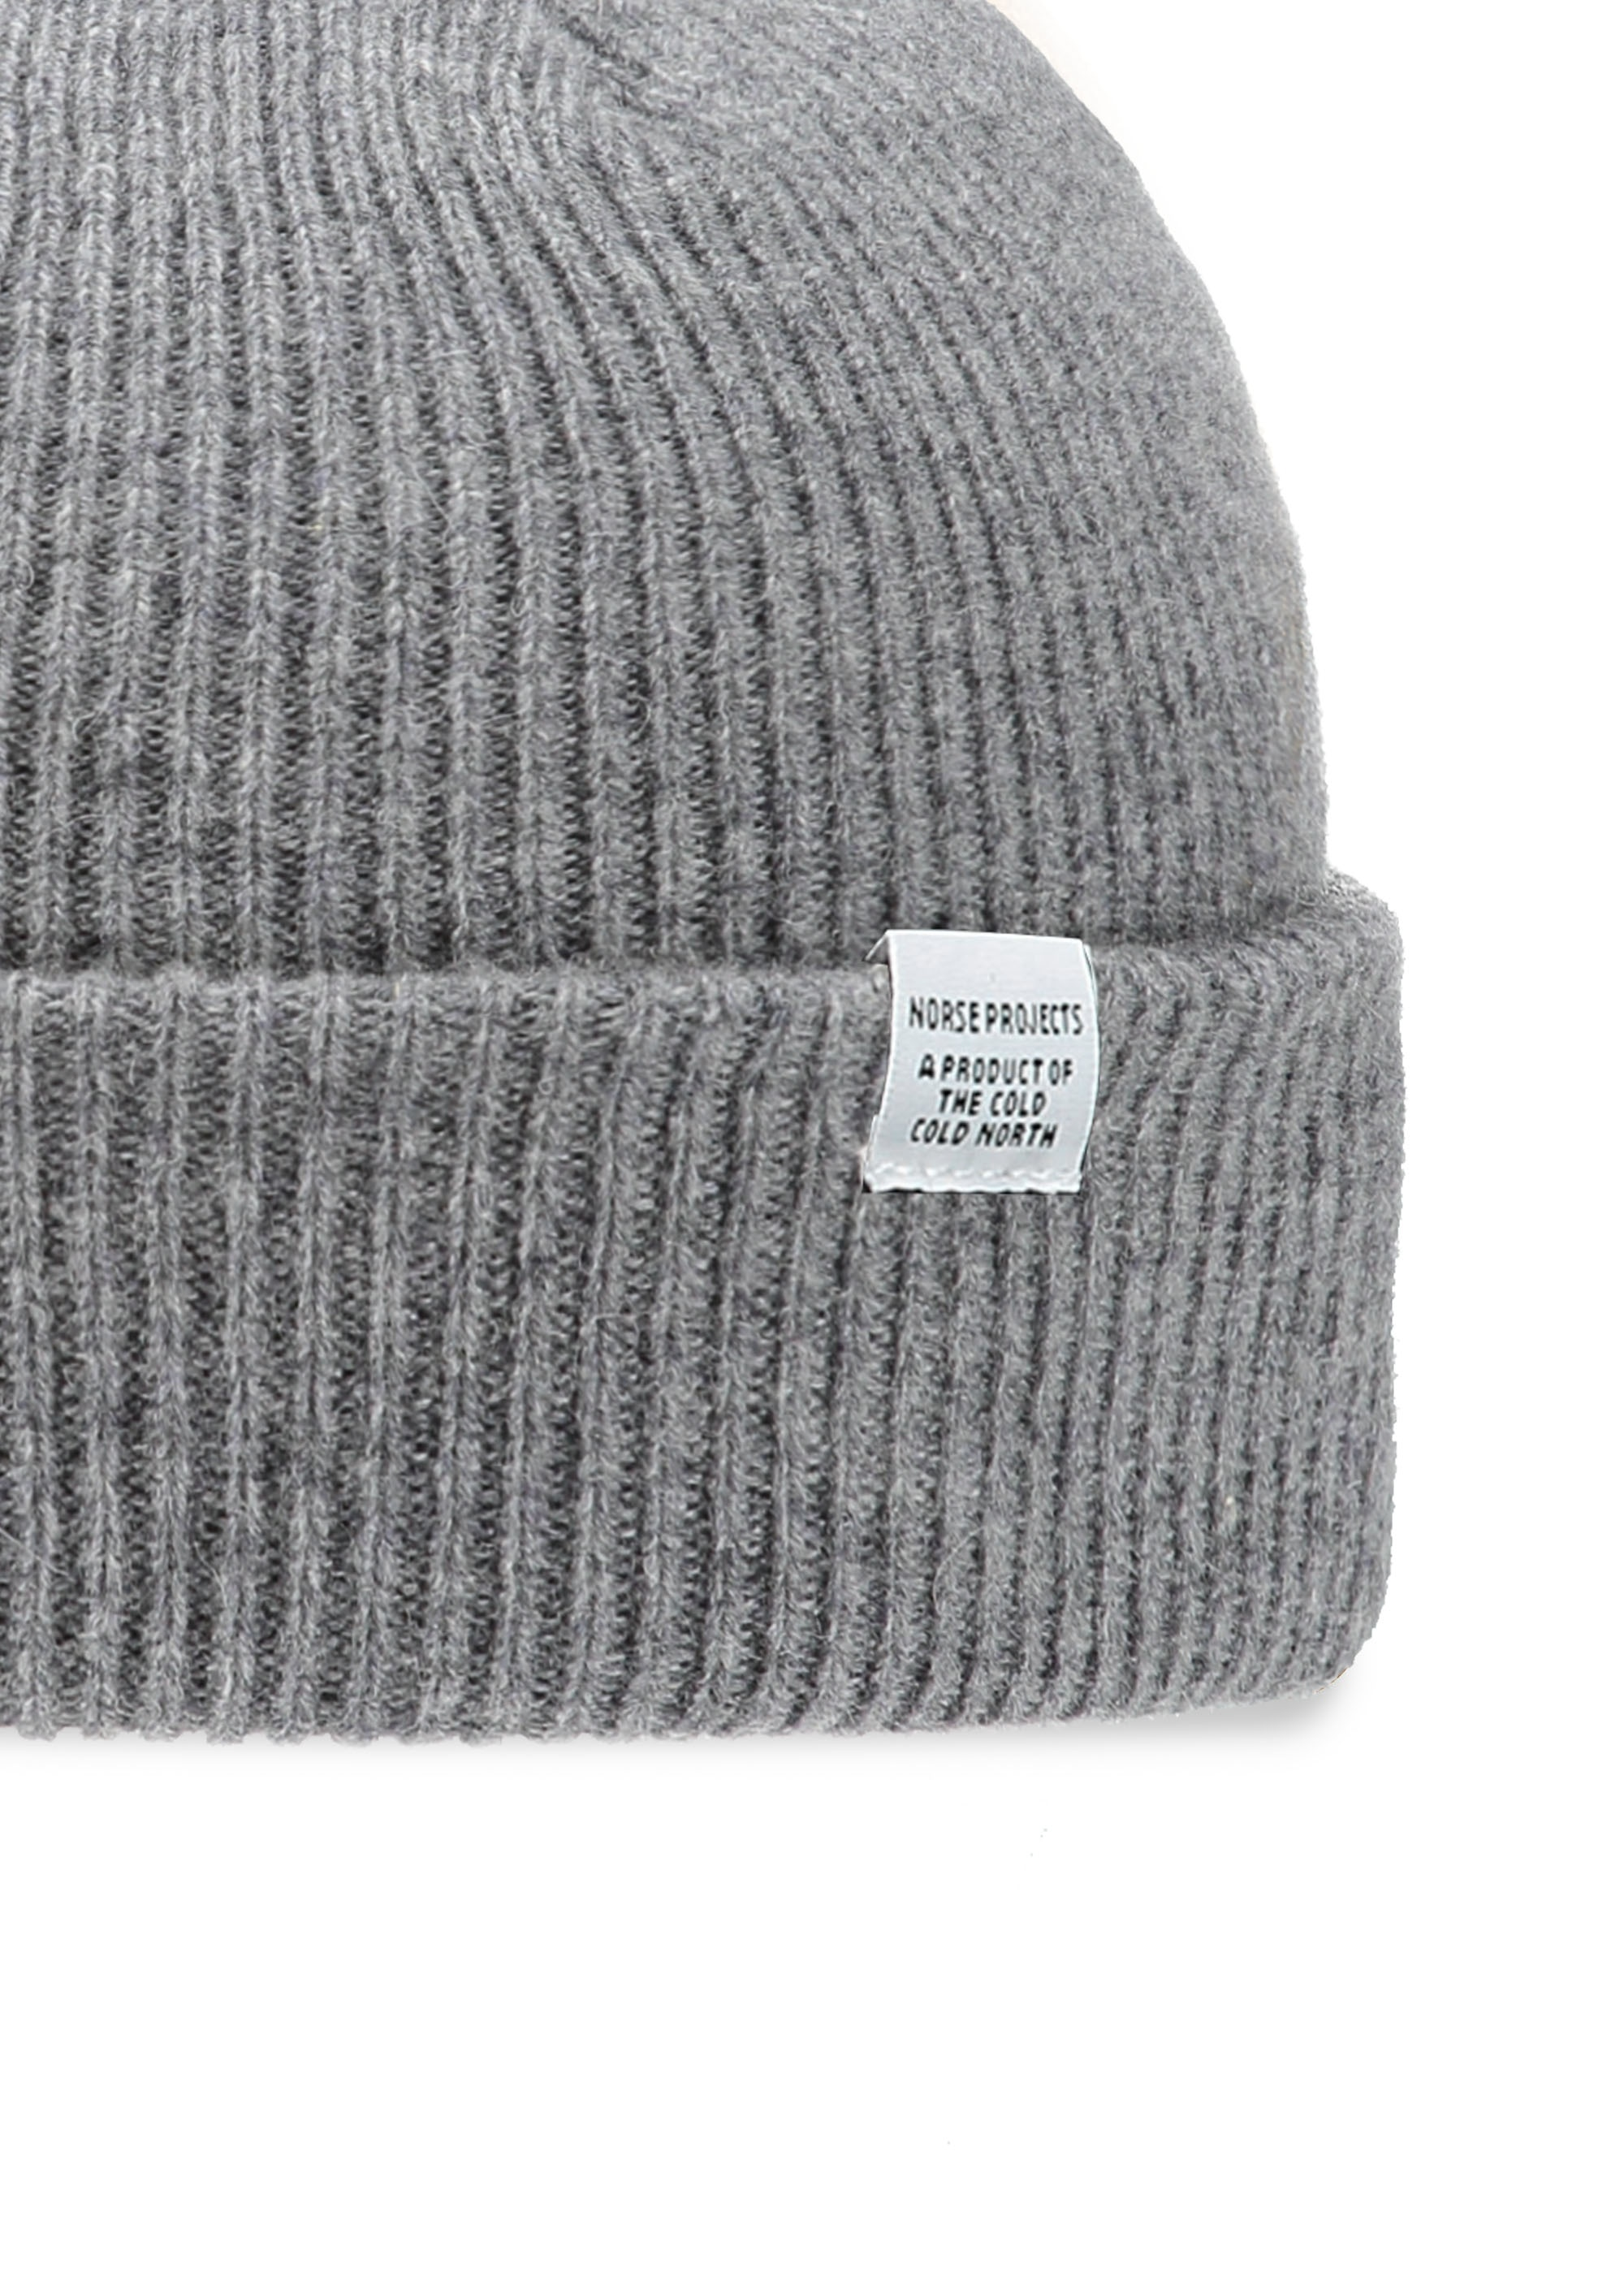 a00b5a1d285 Norse Projects Norse Beanie - Light Grey Melange - Headwear from ...